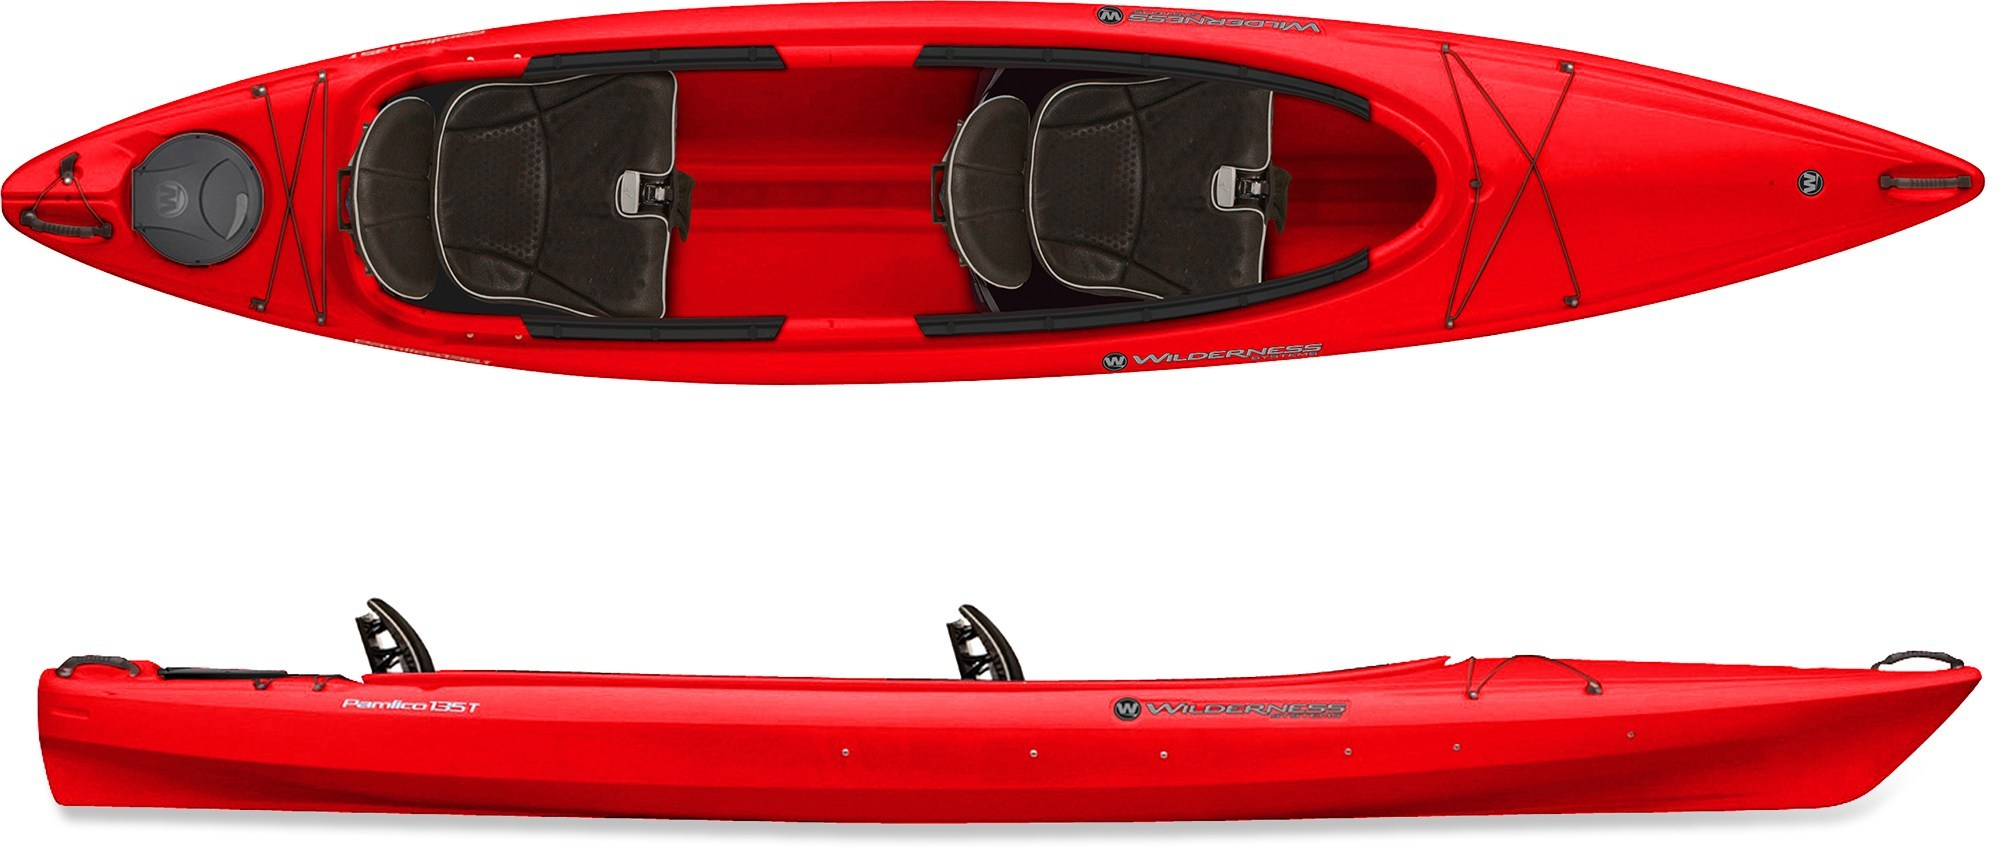 Wilderness Systems Pamlico 135 Tandem Kayak